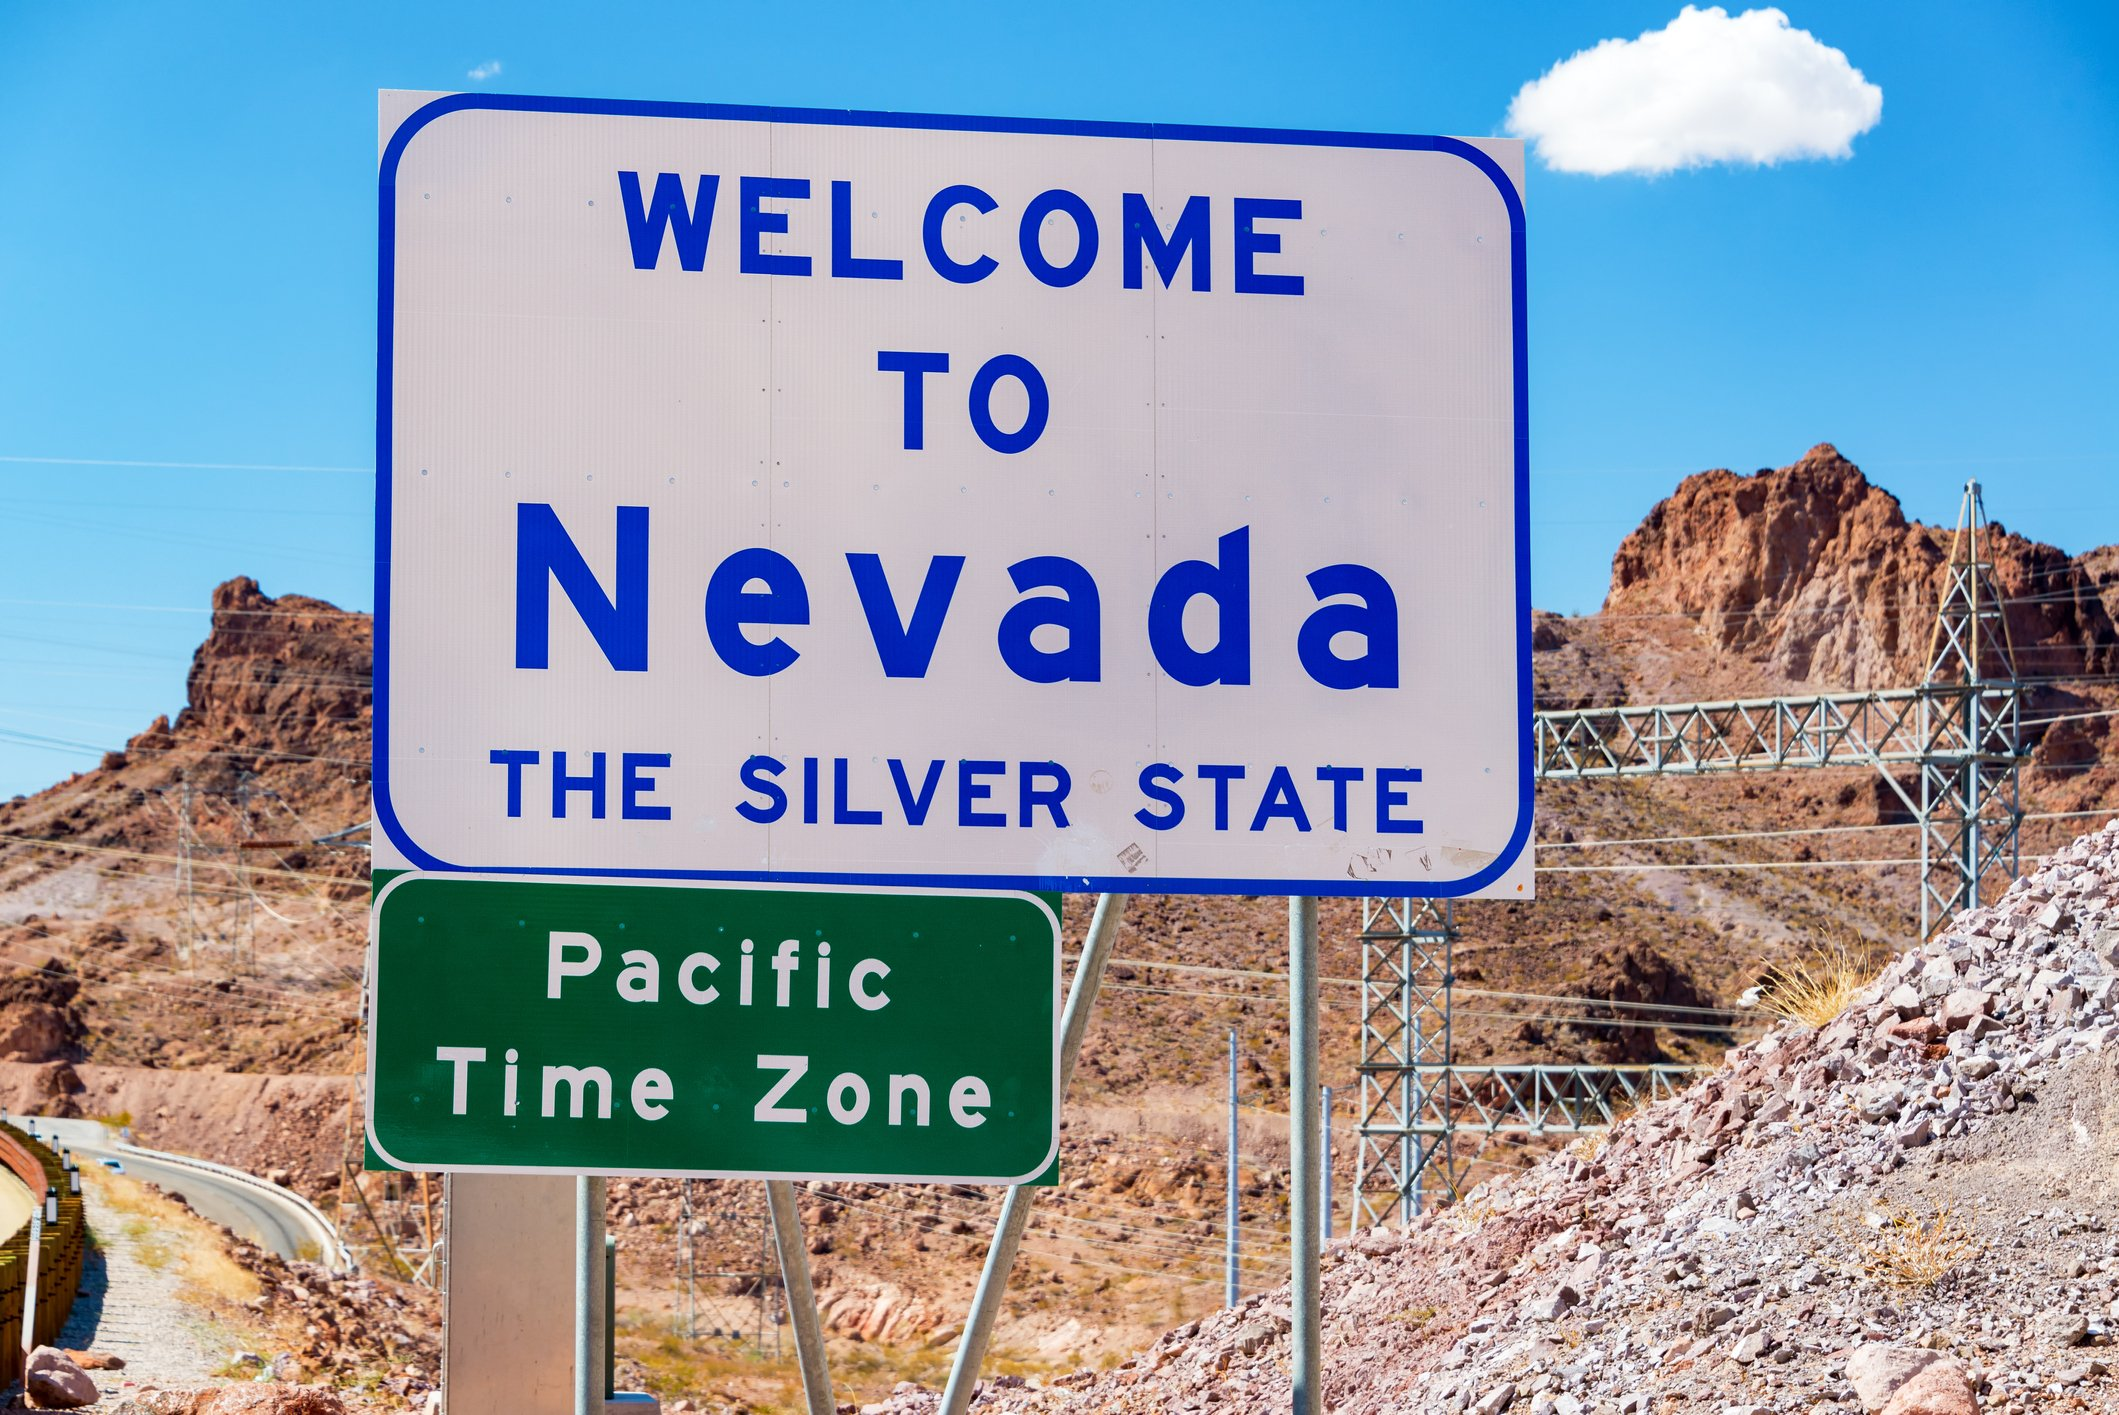 Slide 29 of 51: This sign is definitely not as colorful as the iconic Las Vegas sign, but it gets the job done.